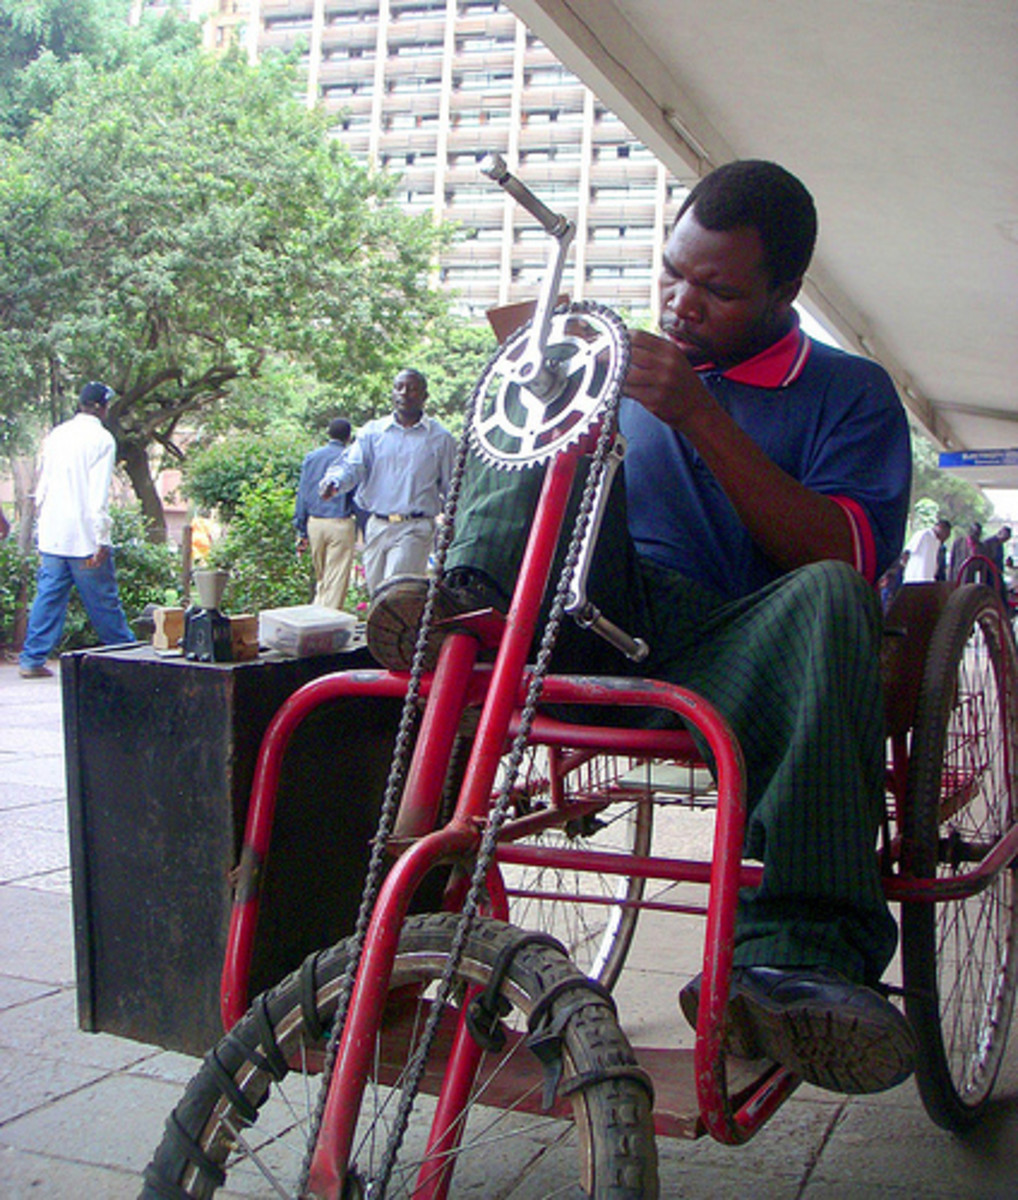 interacting-with-handicapped-children-handicapped-adults